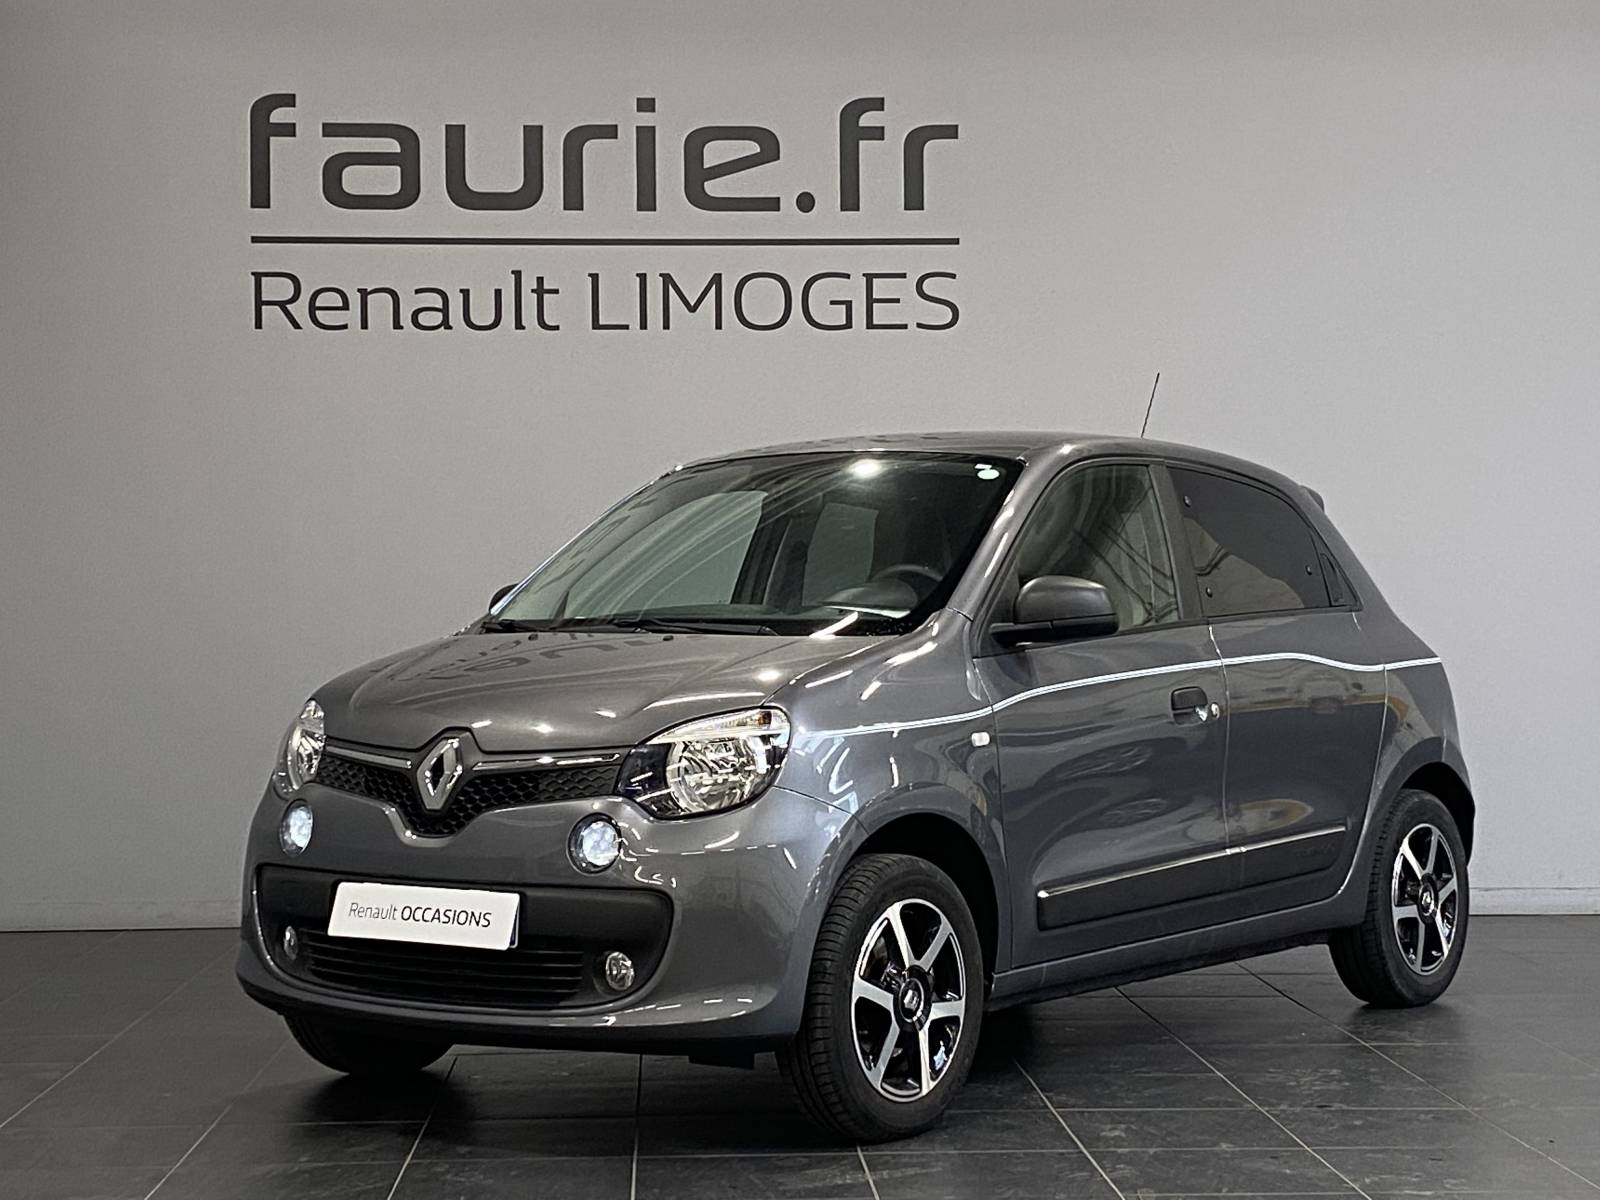 RENAULT Twingo III 0.9 TCe 90 Energy E6C - véhicule d'occasion - Site Internet Faurie - Renault - Faurie Auto Limoges - 87000 - Limoges - 1